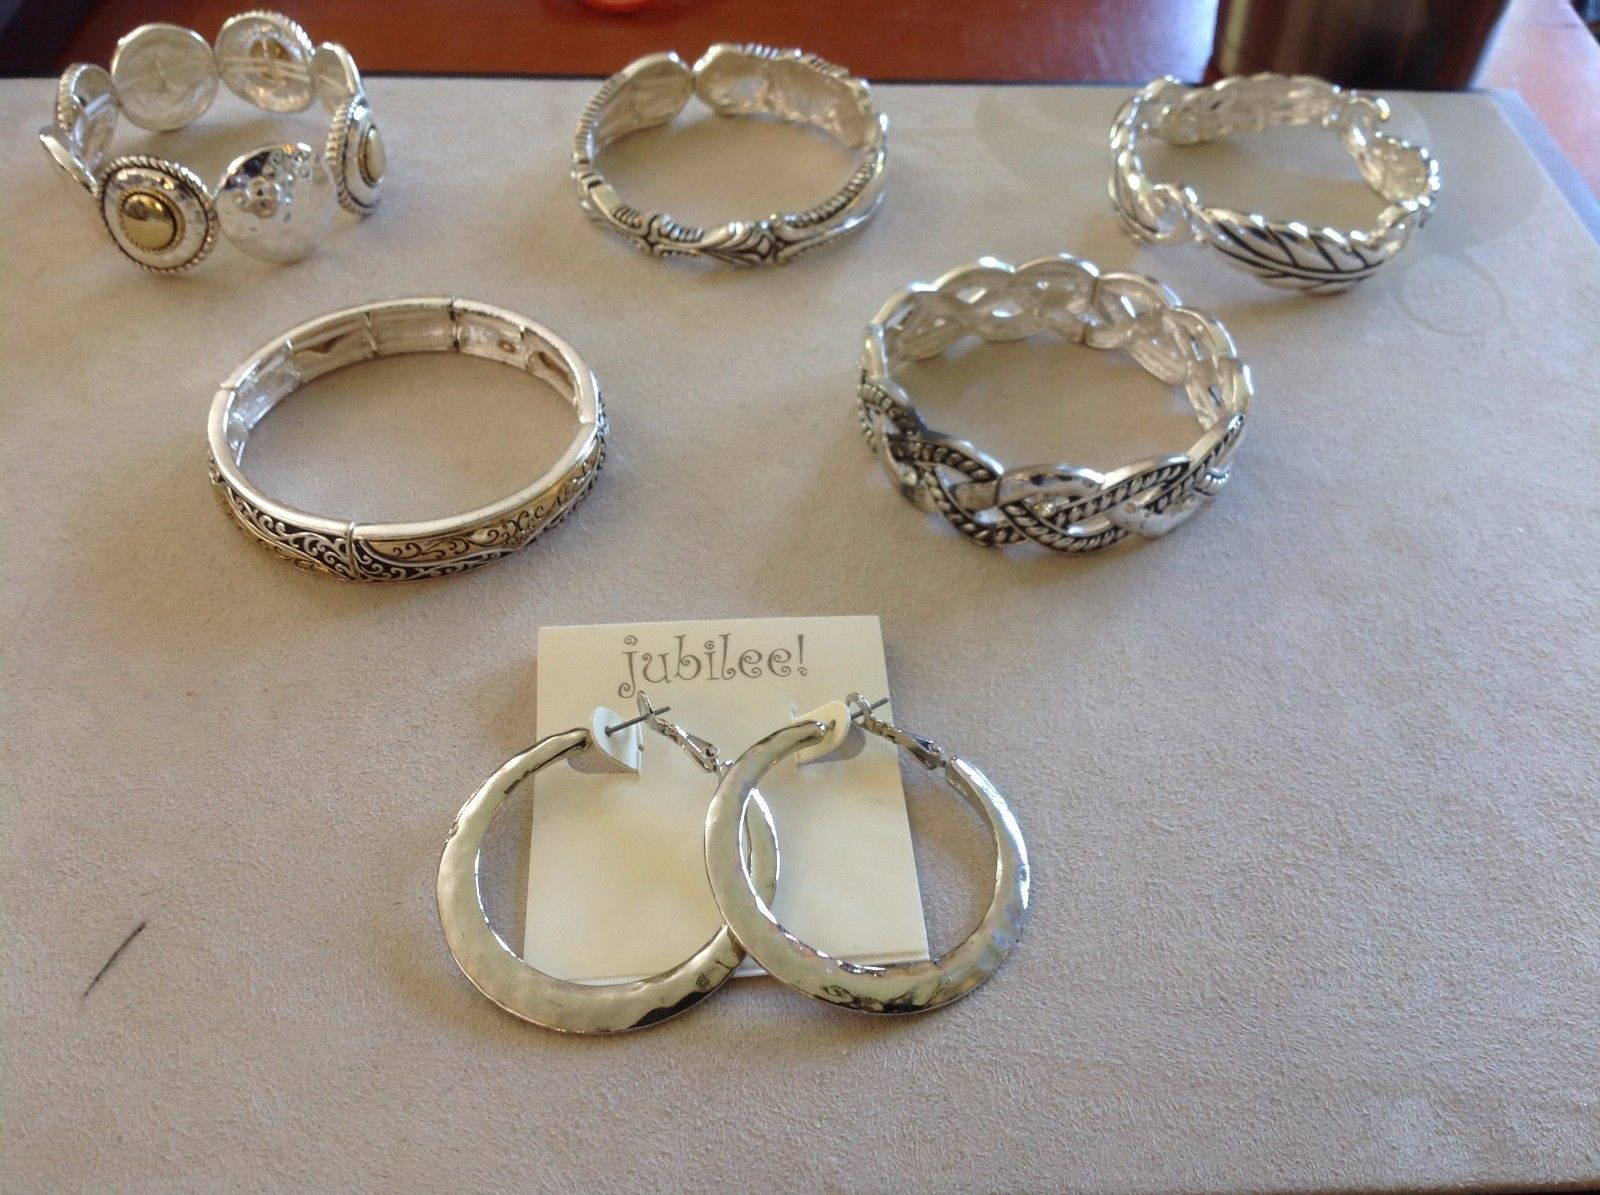 Set Collection of Silver Toned Bracelets Earrings Jubilee! Weave Floral Blessed